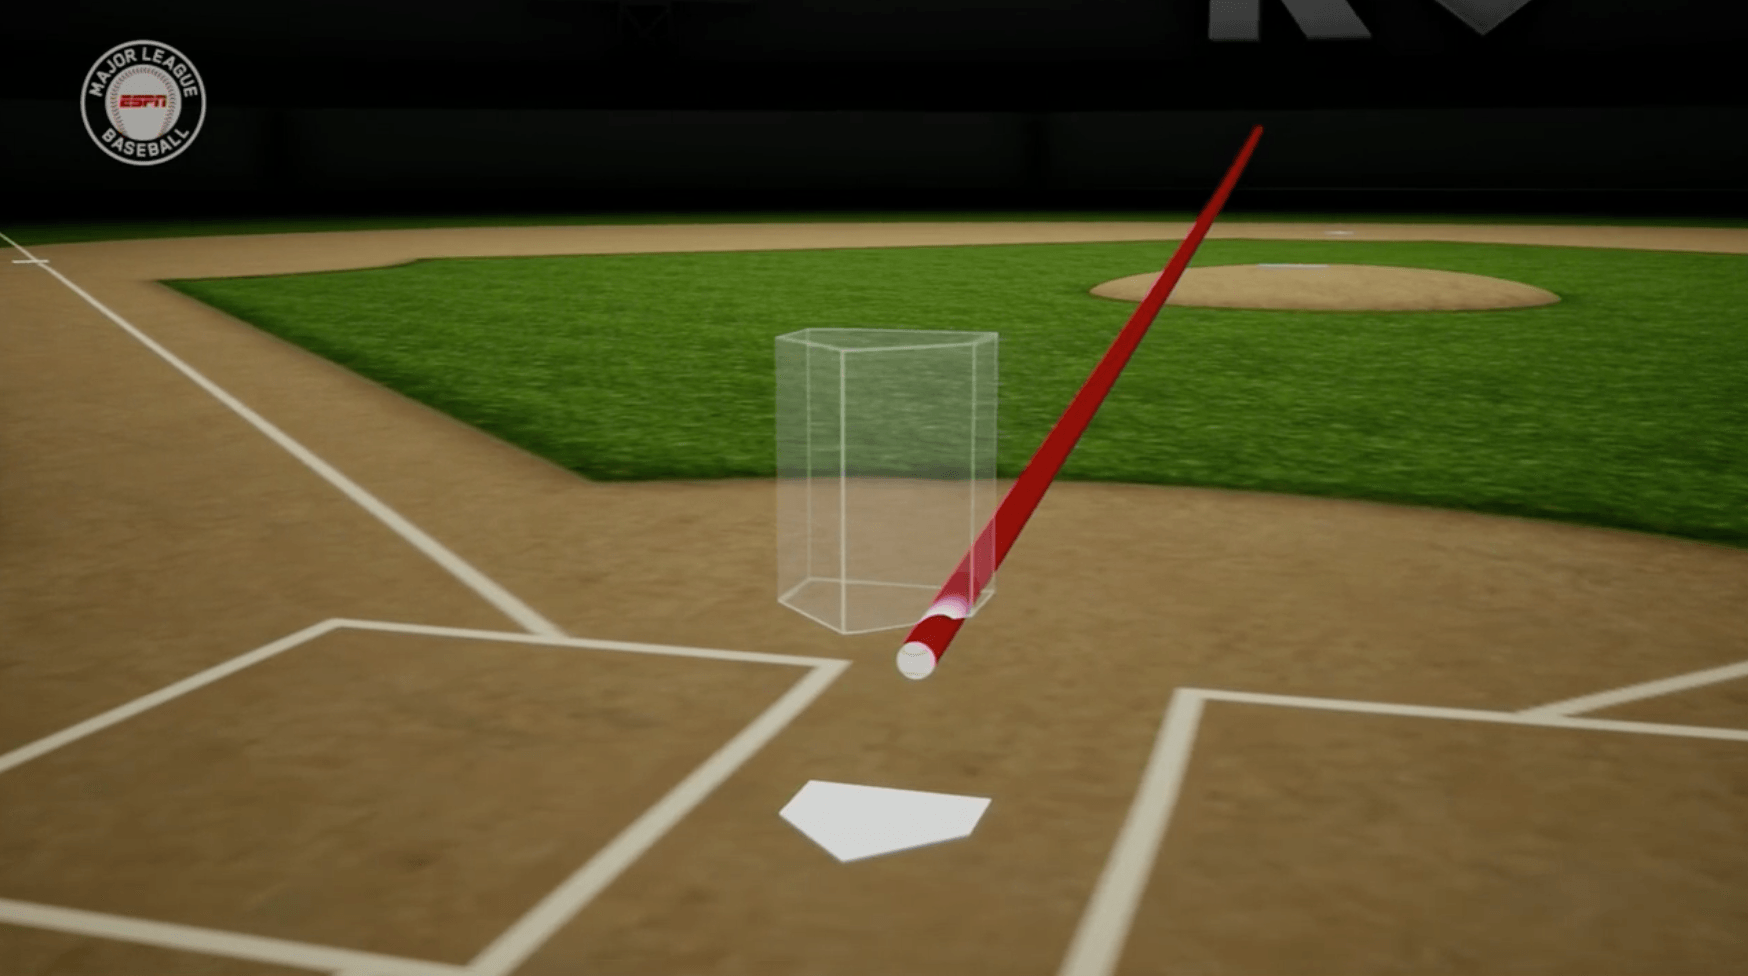 Espn Innovates Mlb Broadcast With 3d K Zone Field Mics Low Home Camera